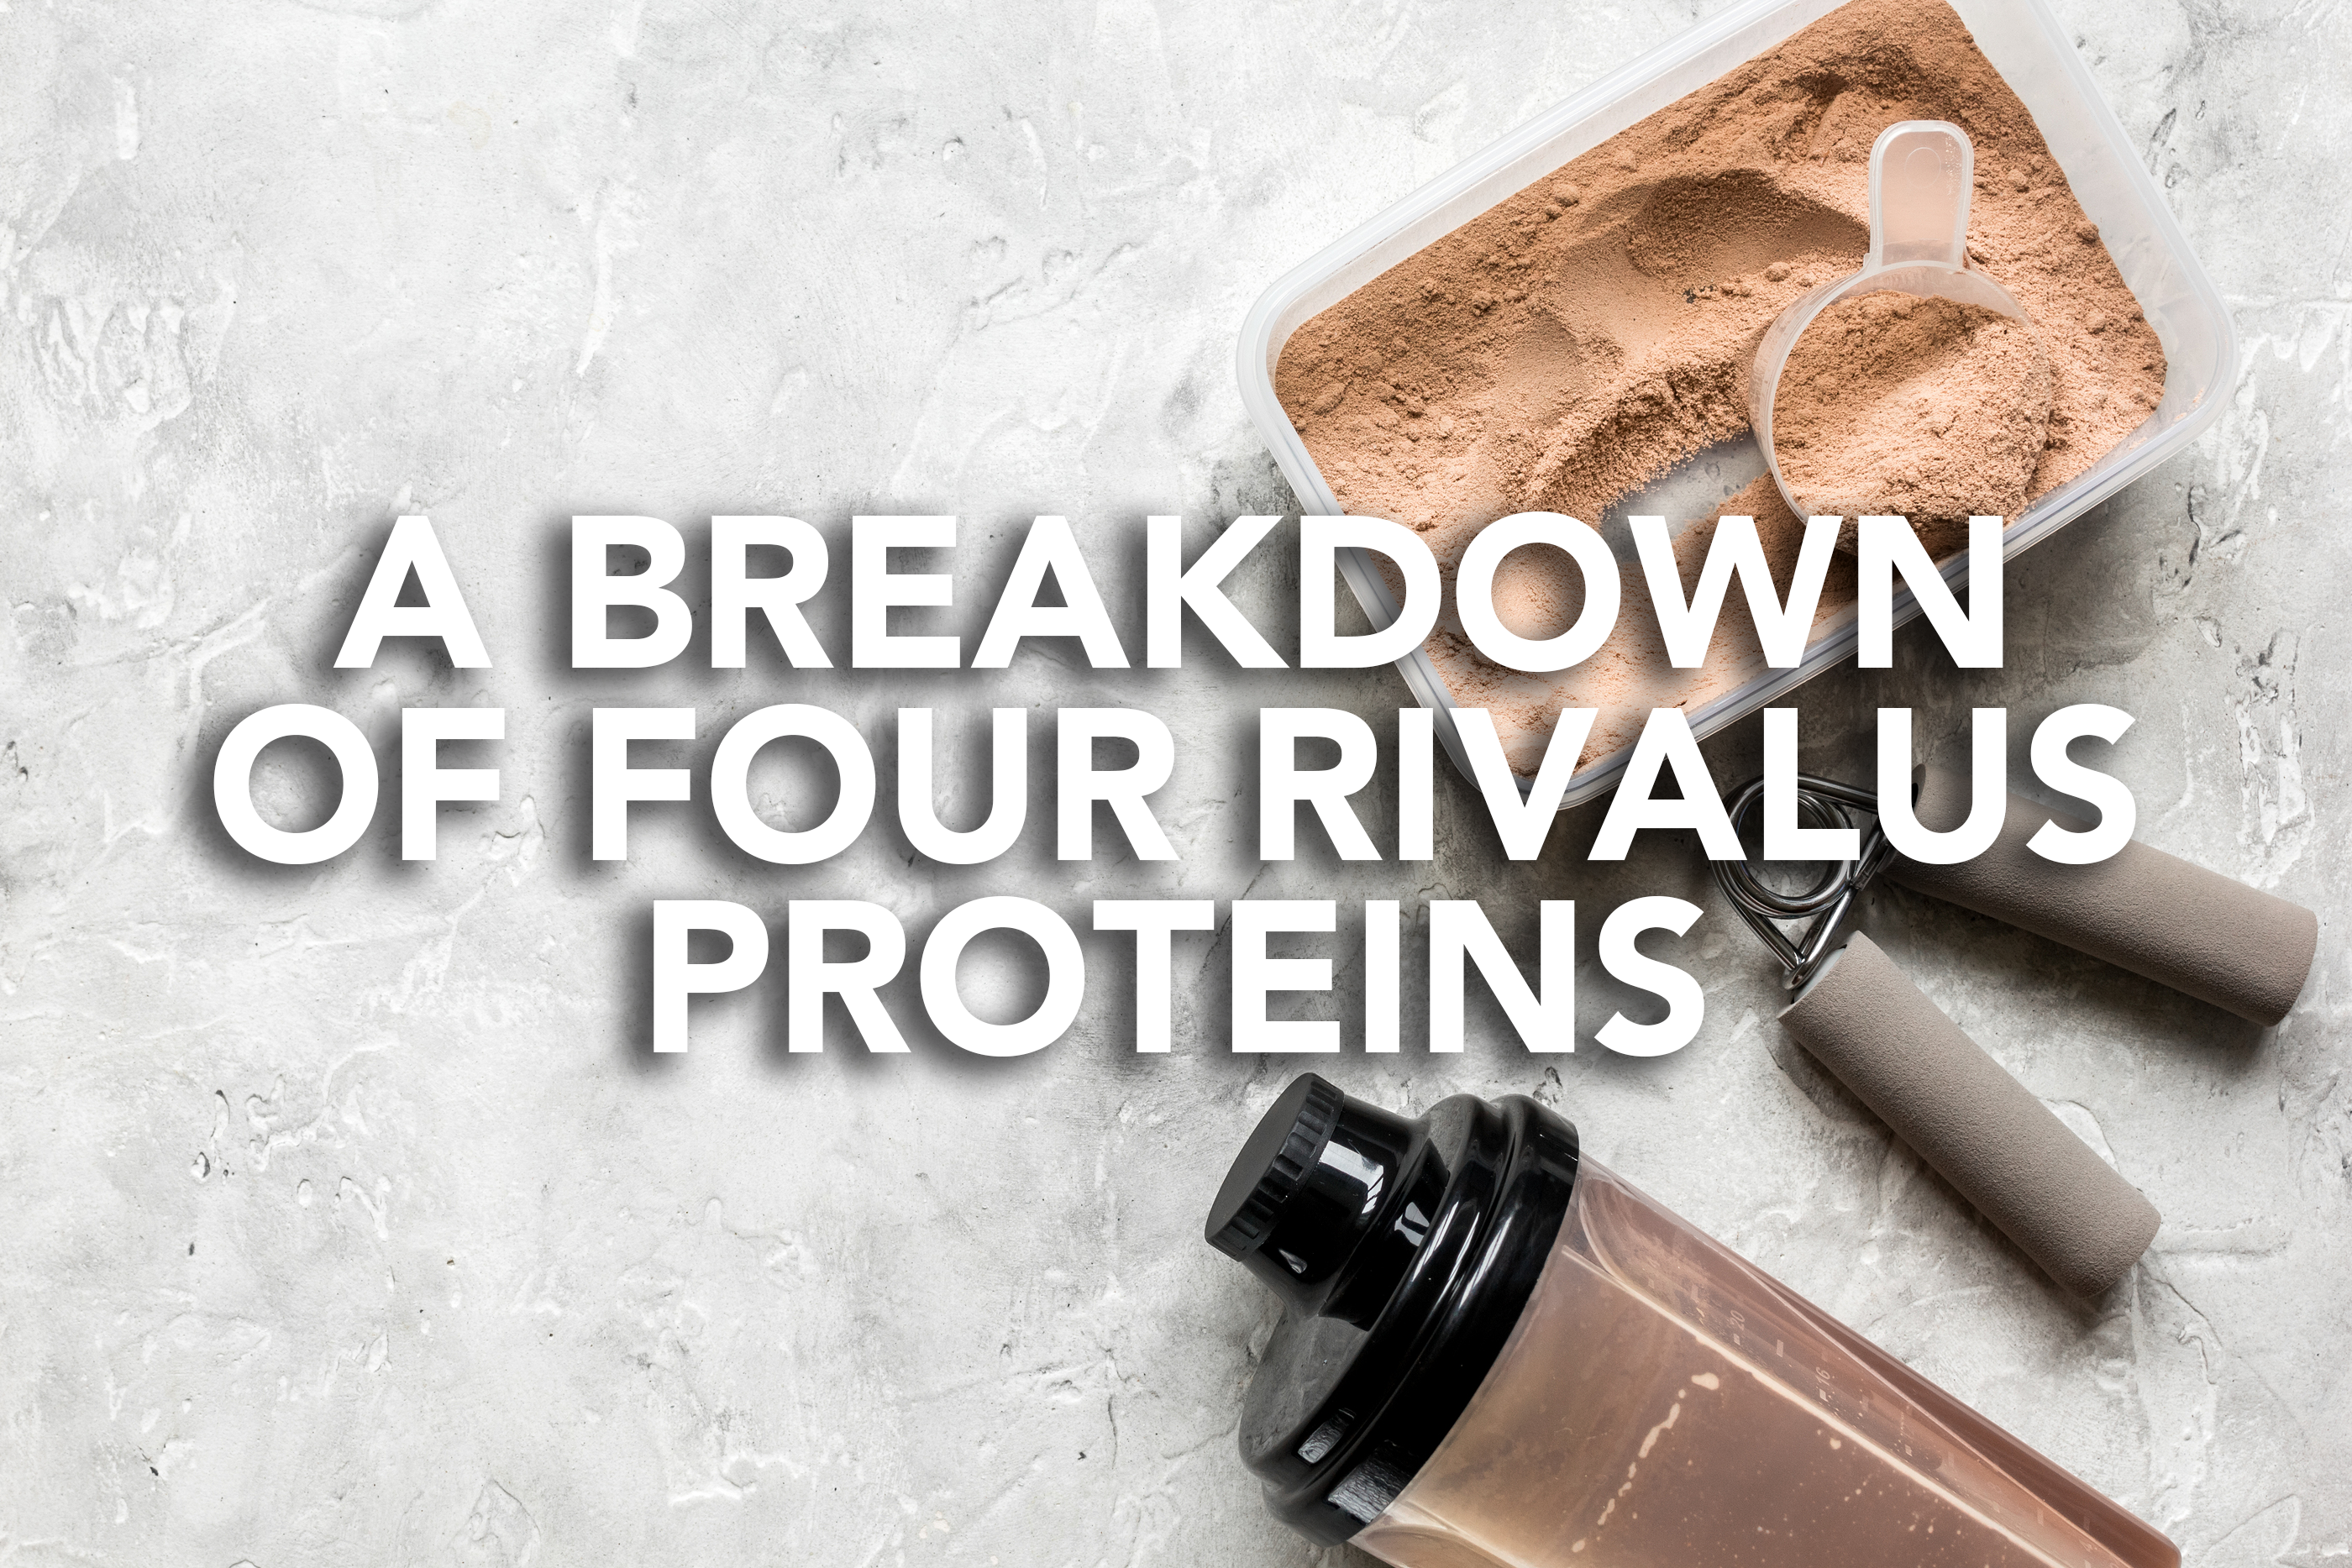 A Breakdown of 4 RIVALUS Proteins